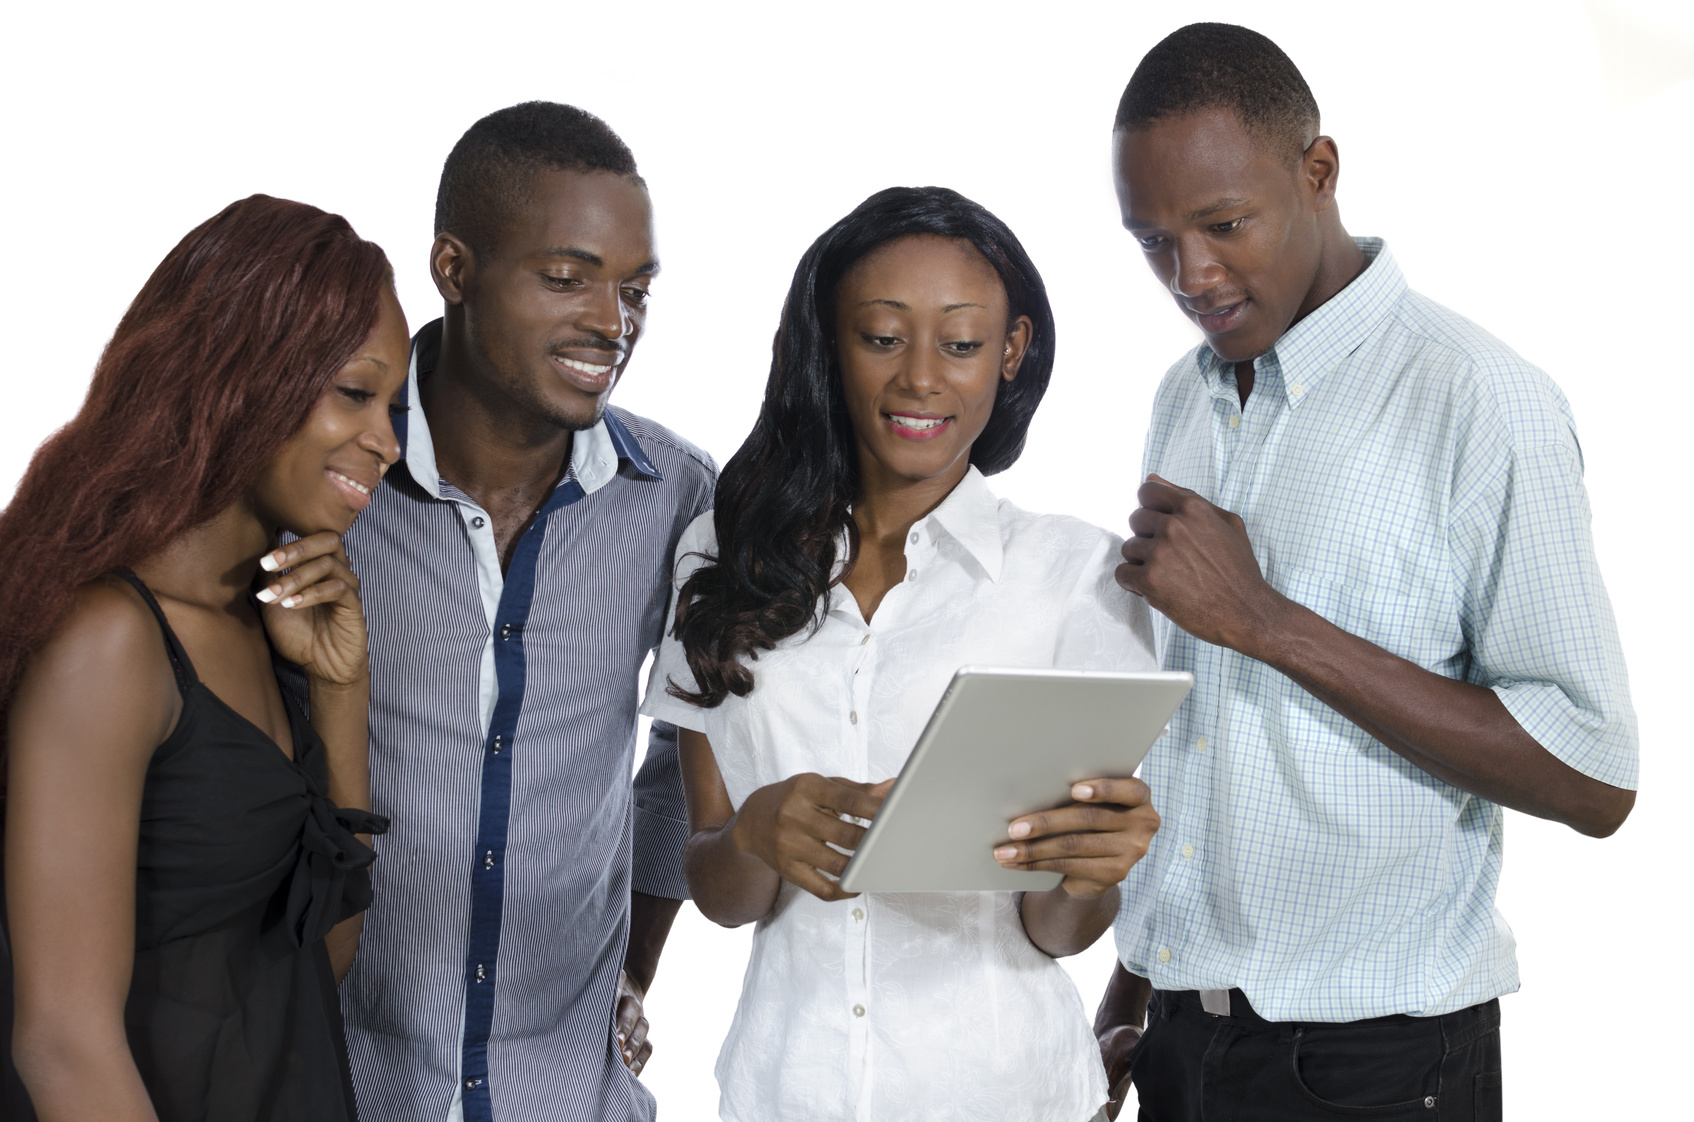 Read This: Benefits Of Husband And Wife Working Together